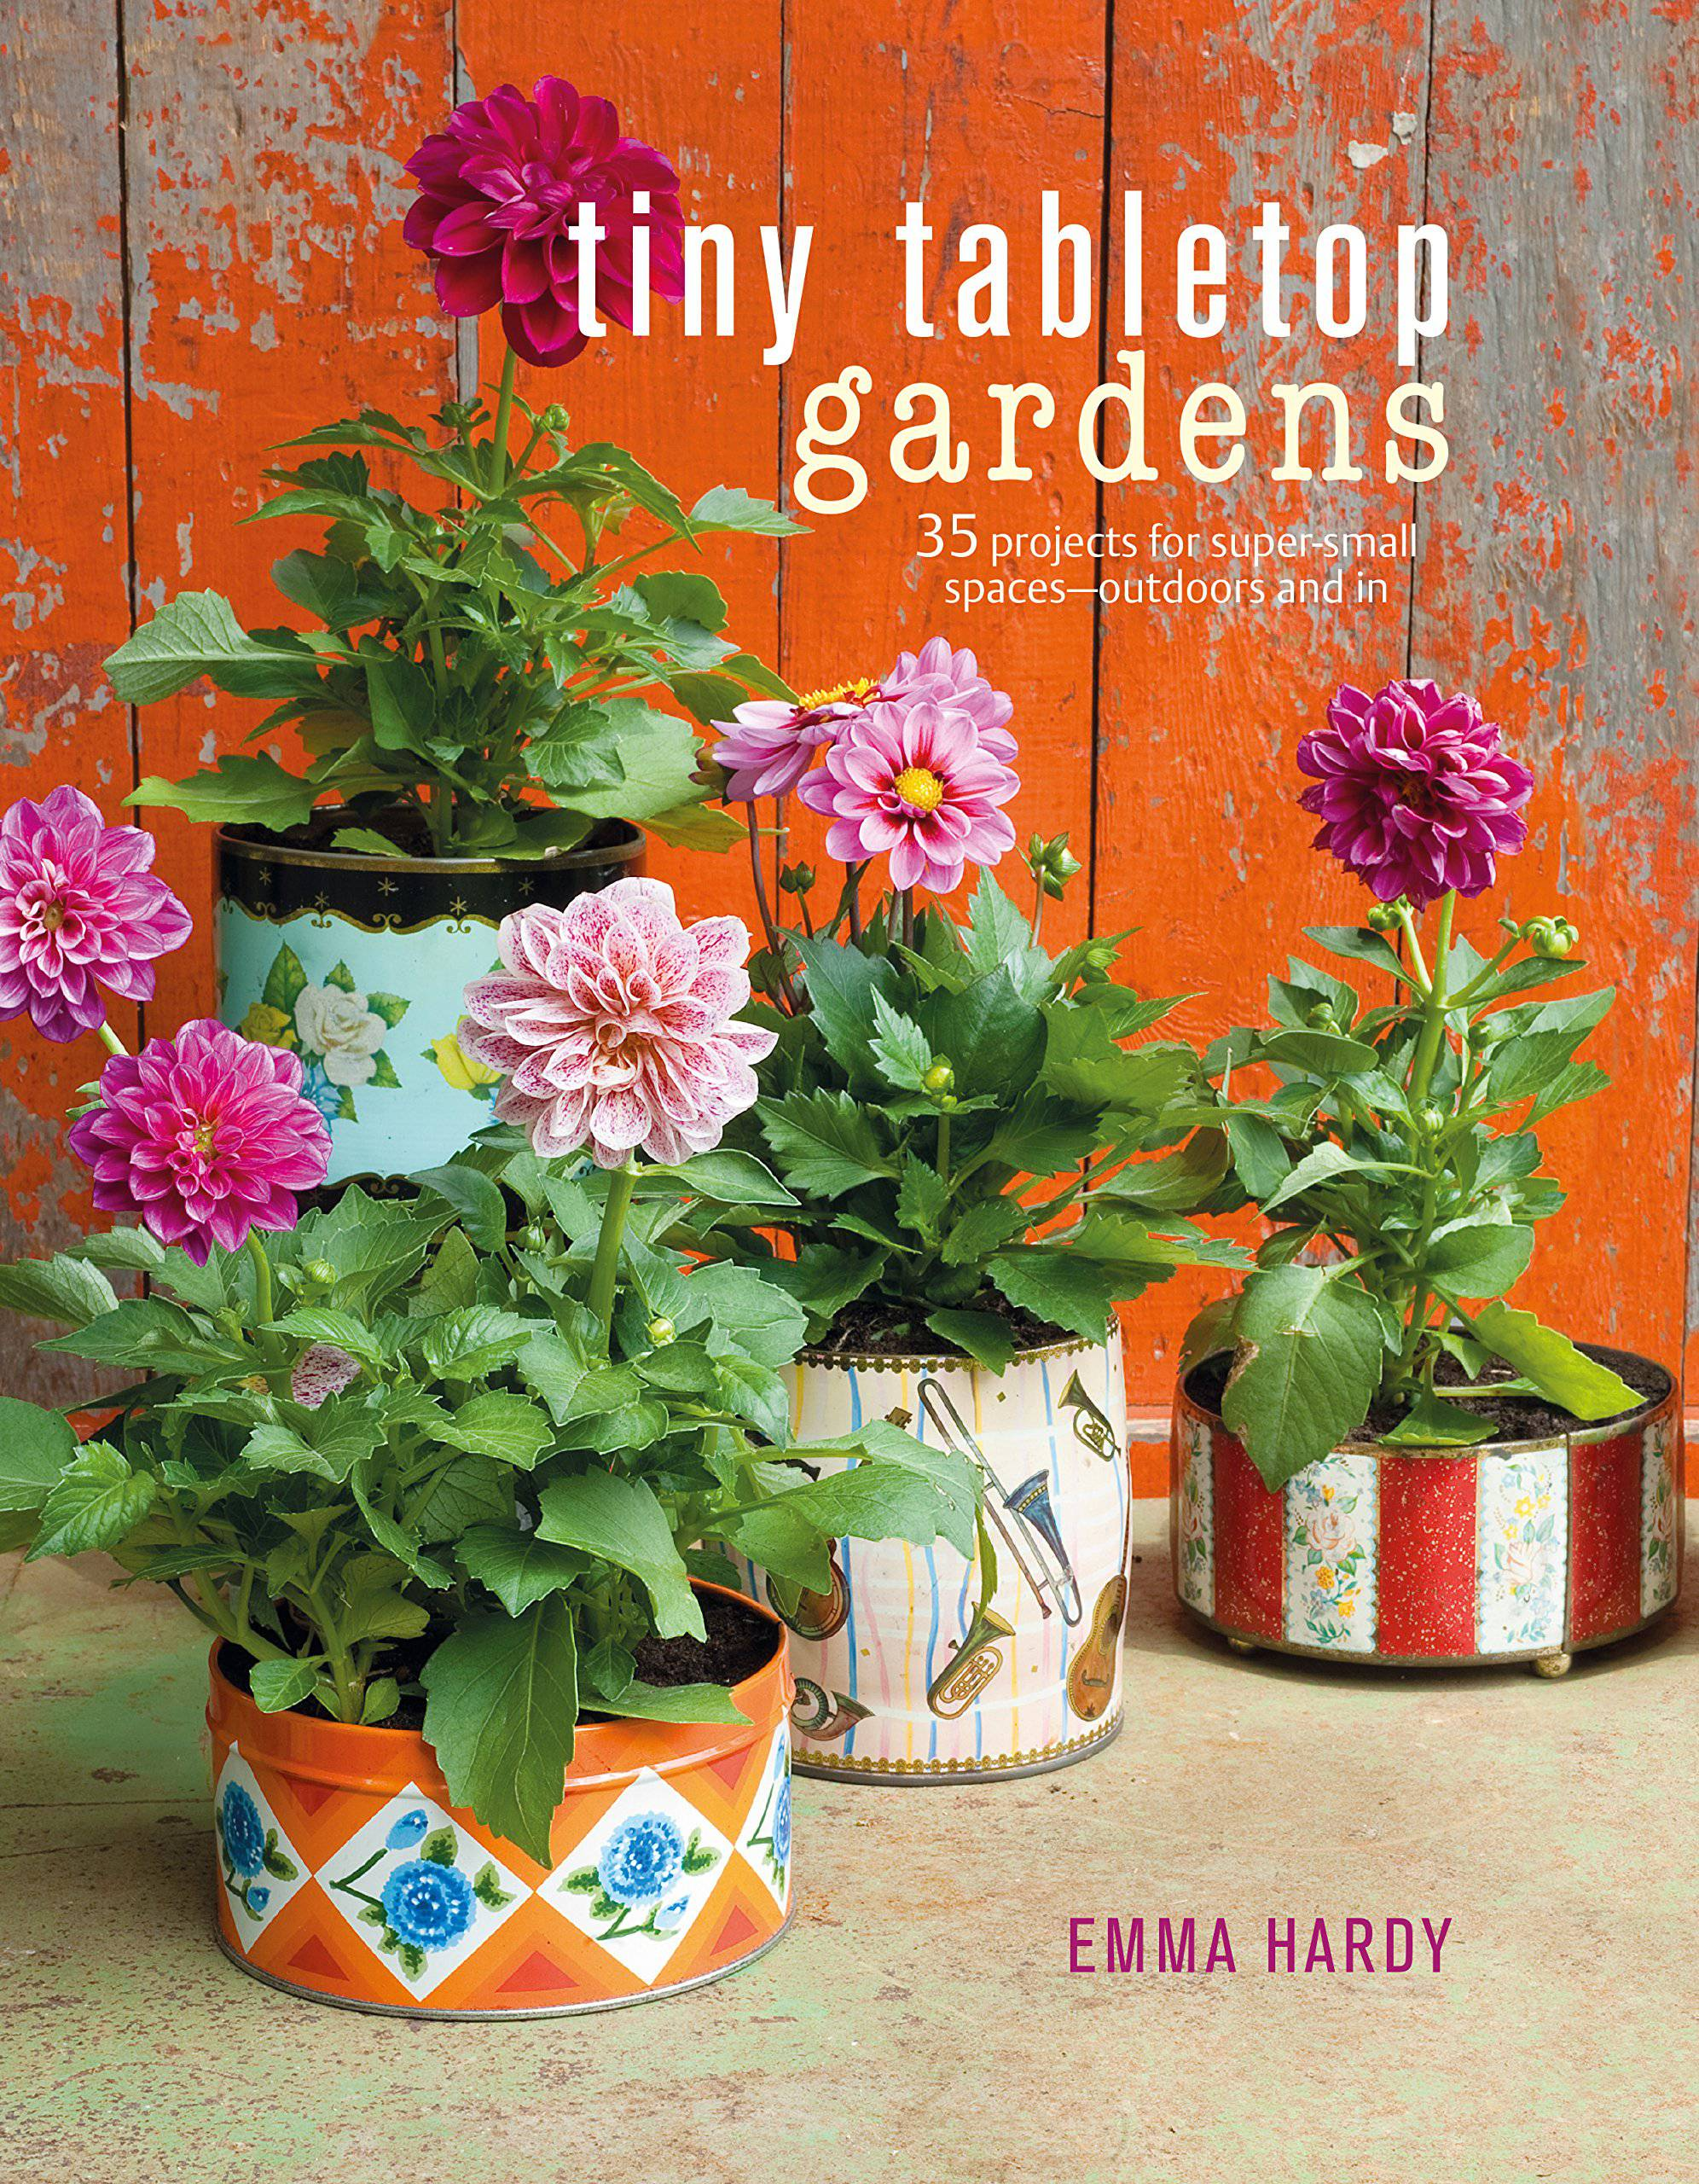 Tiny tabletop gardens by Emma Hardy